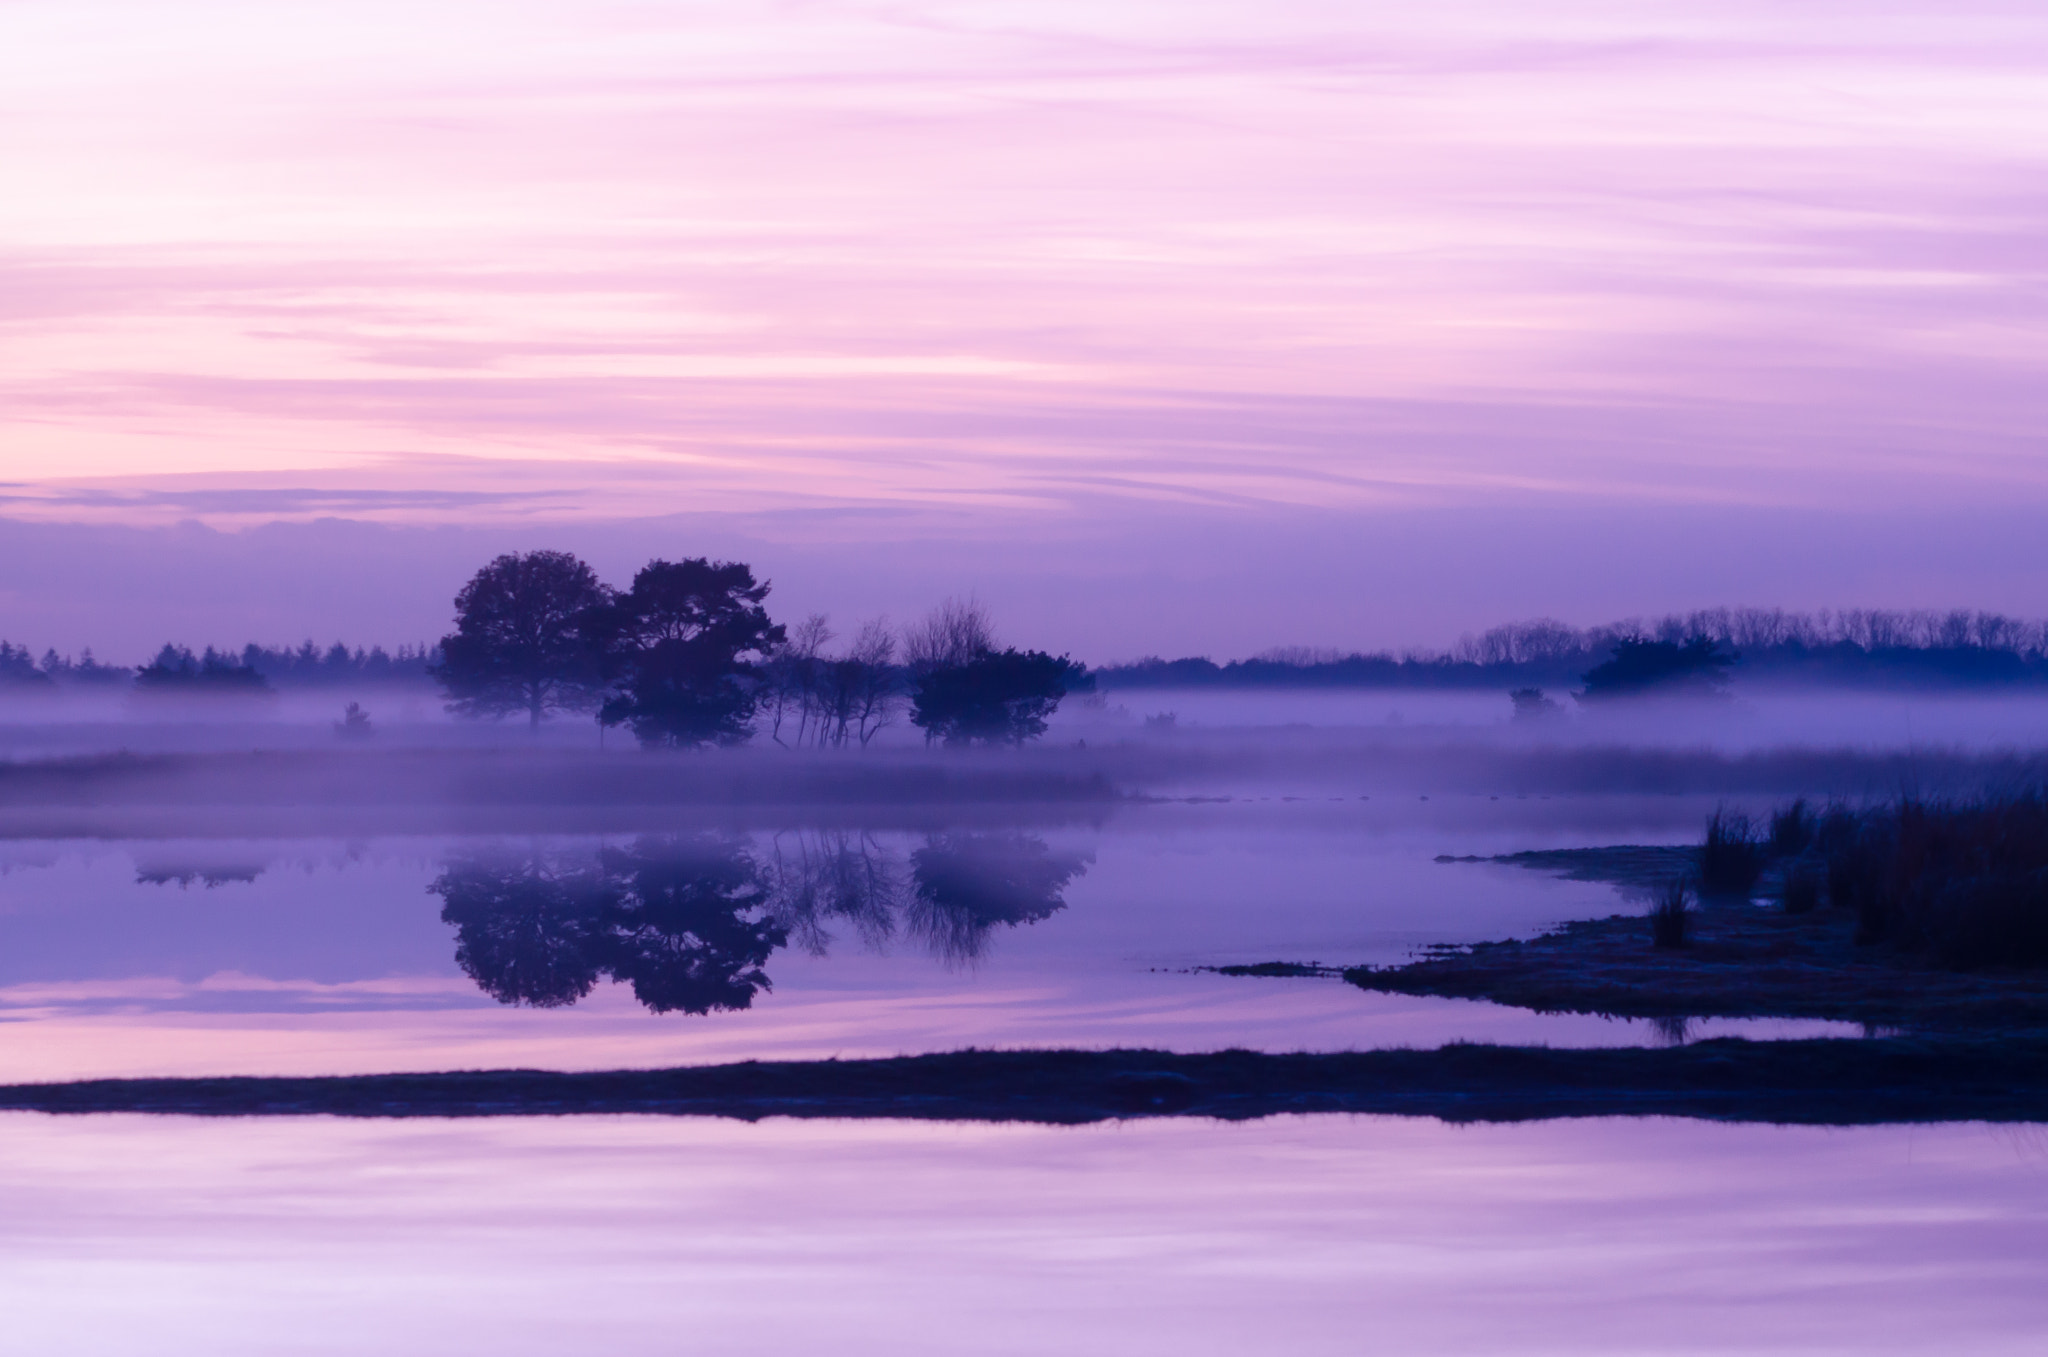 Photograph Strabrechtse Heide 158 by Mr. DESHAMER on 500px